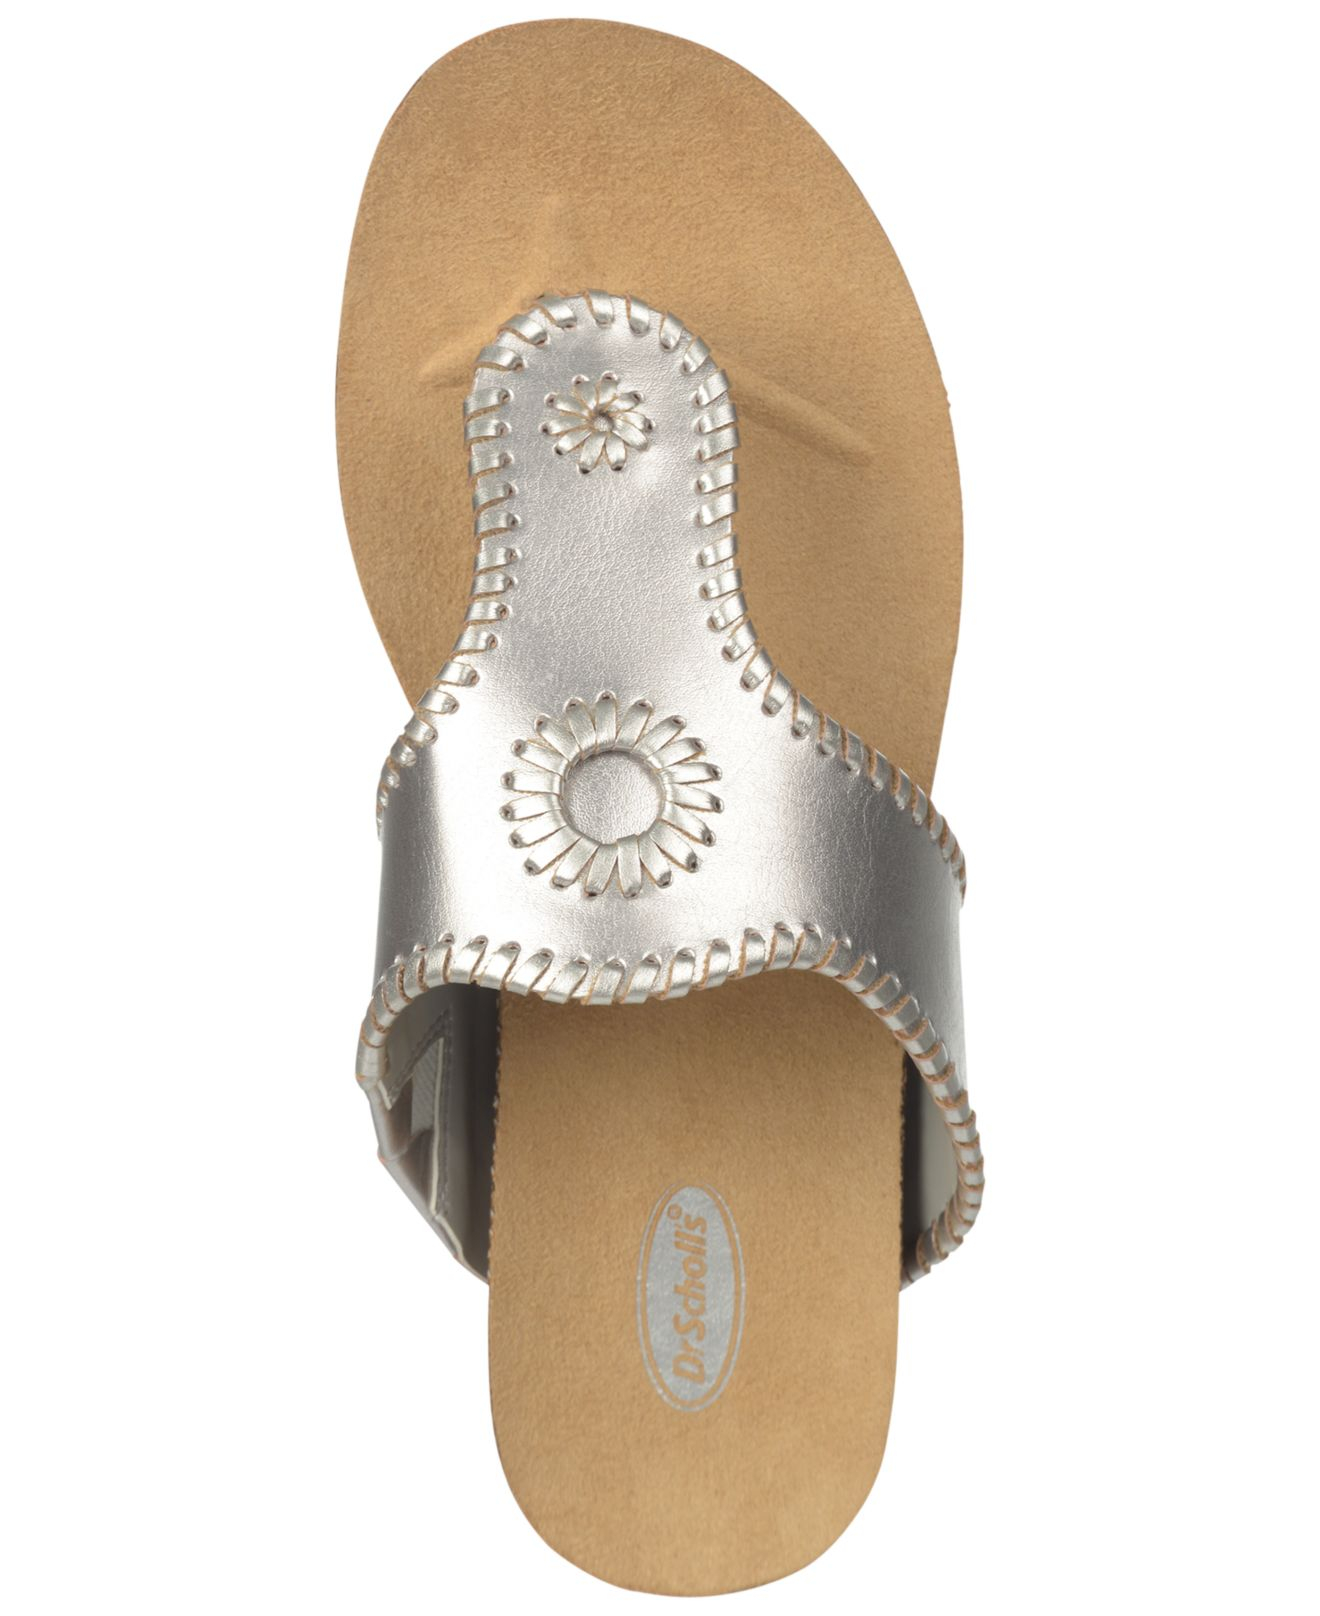 4acd5d330dd0 Lyst - Dr. Scholls Ridley Footbed Thong Sandals in Metallic